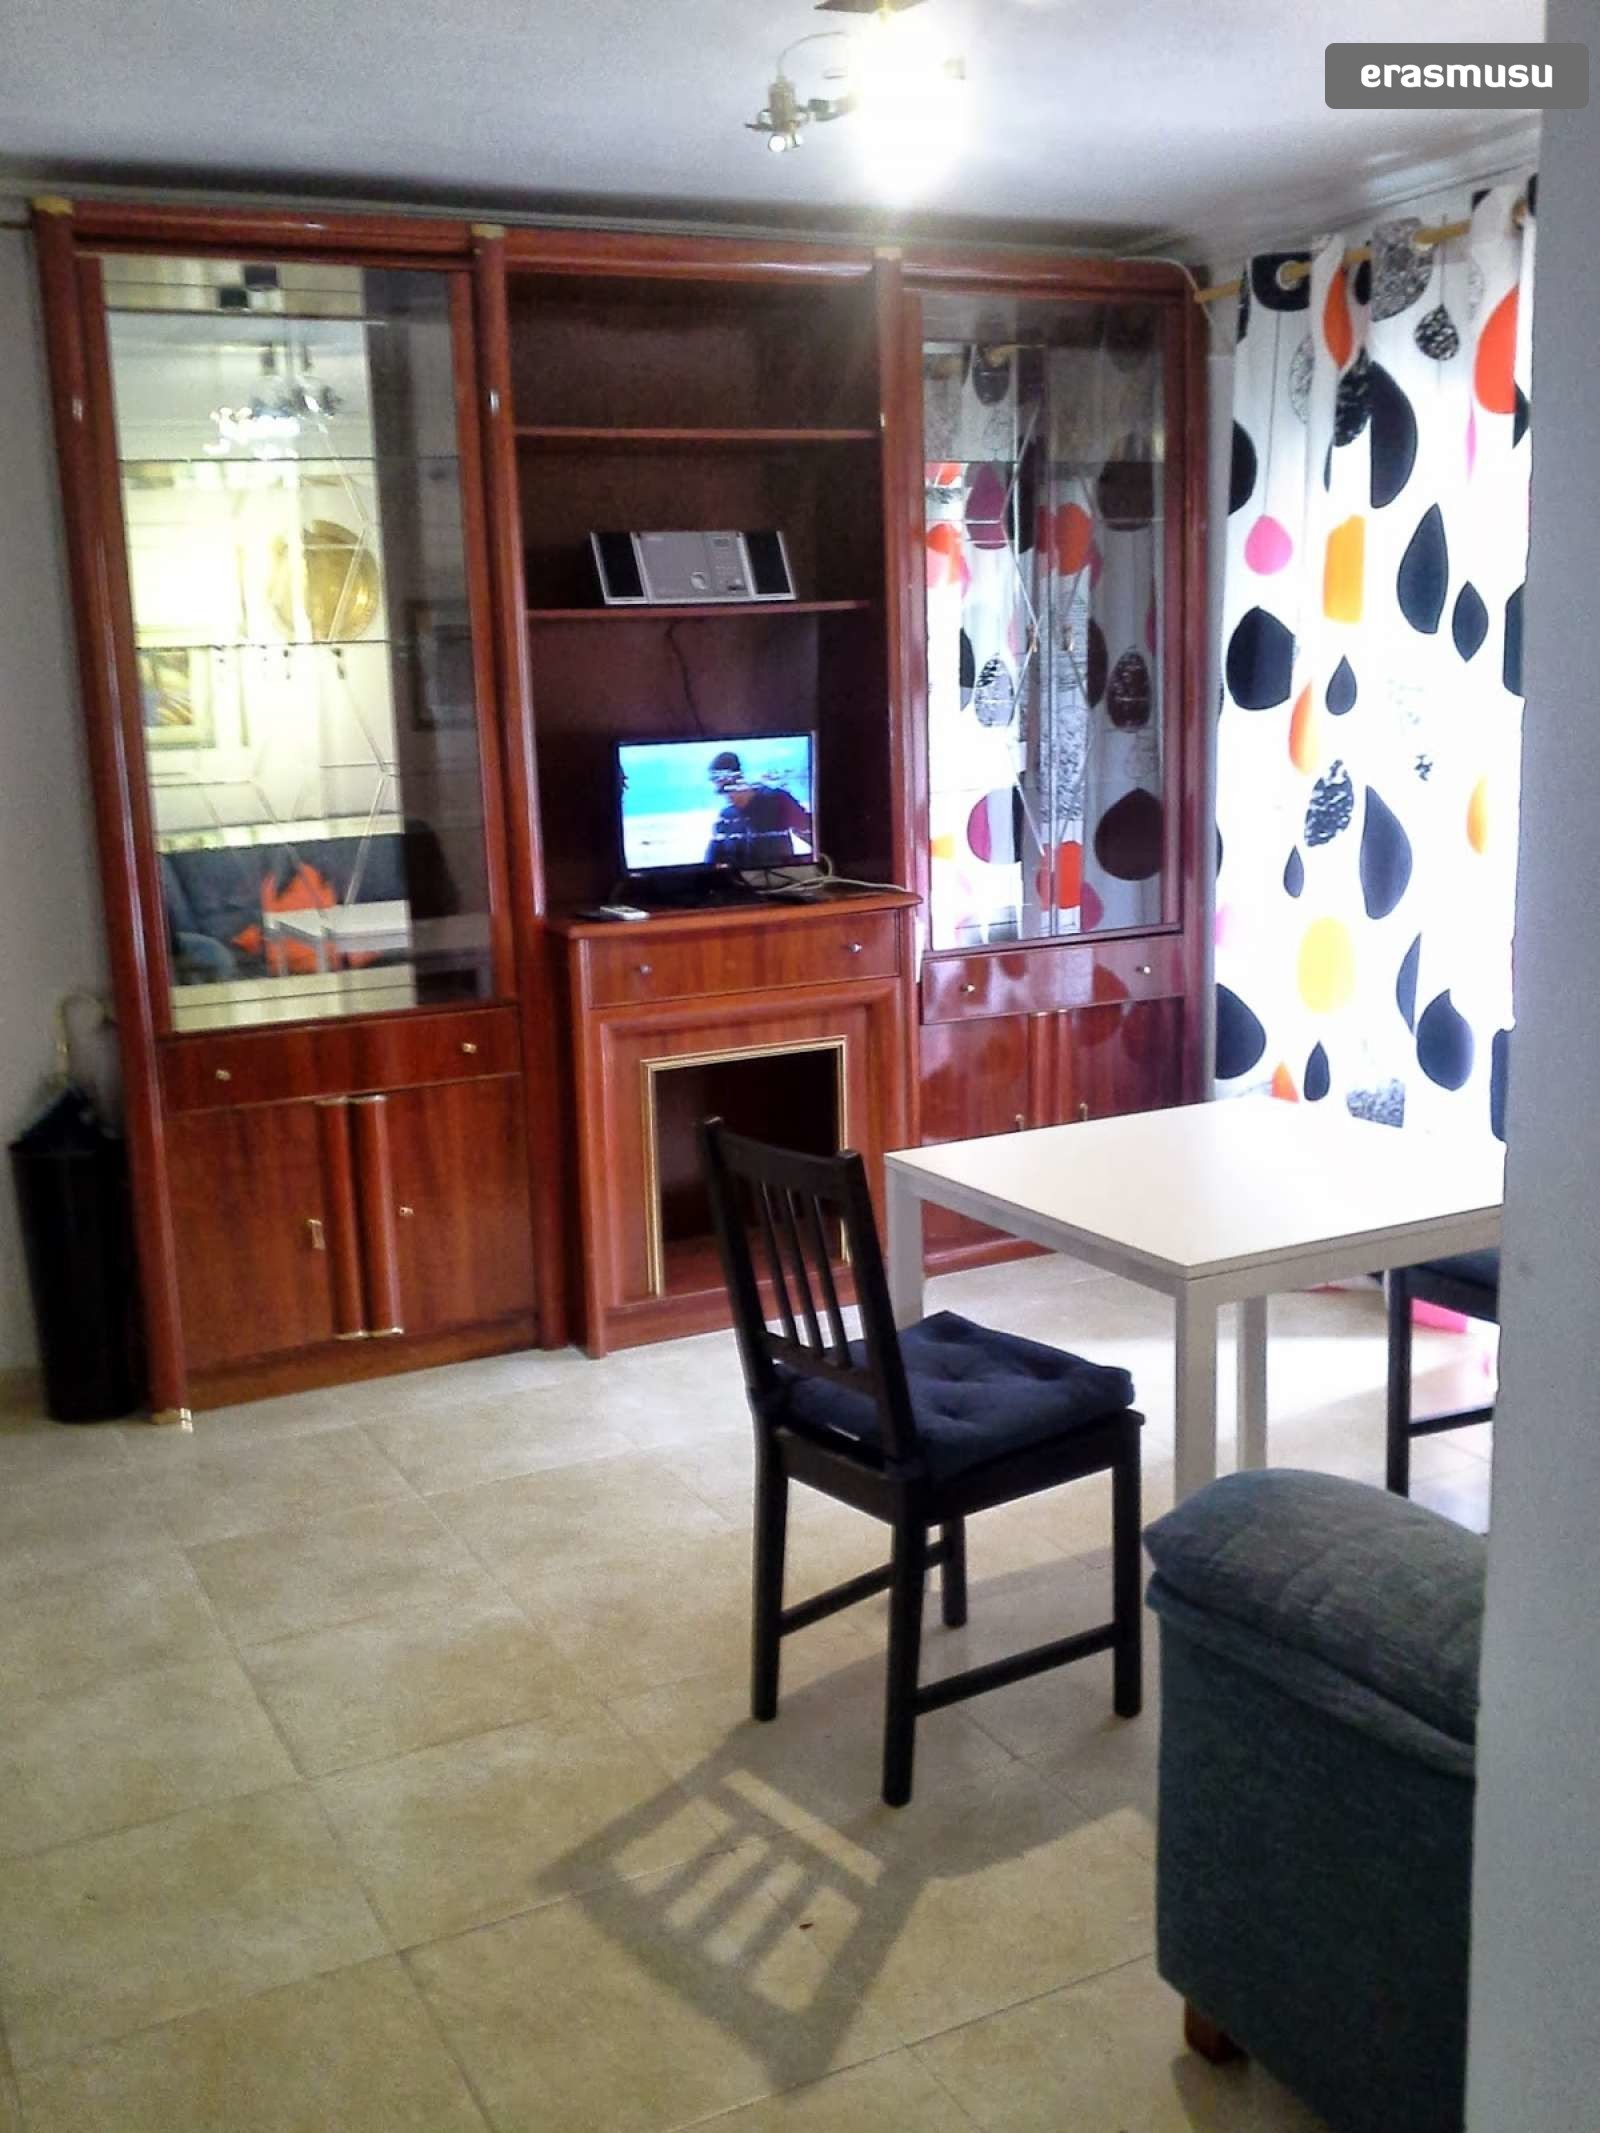 cozy 3bedroom apartment with balcony for rent in triana